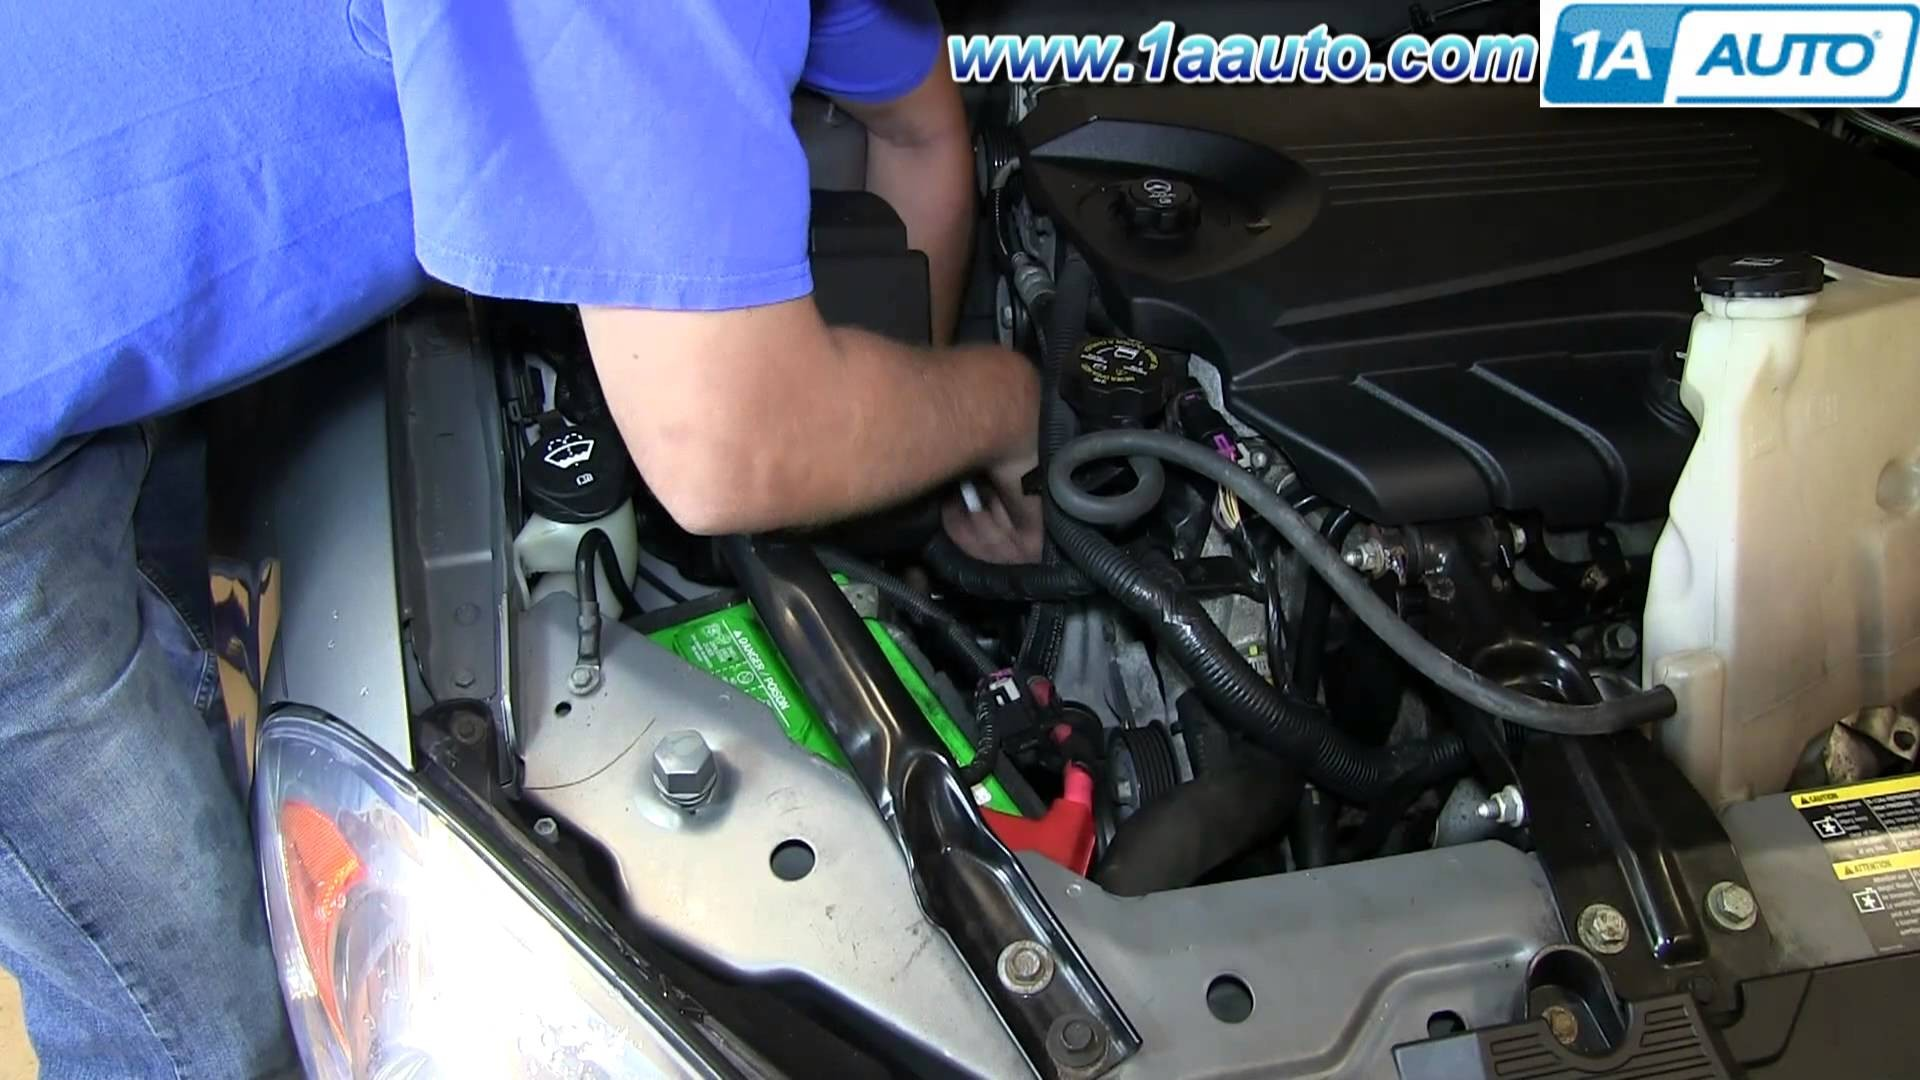 2007 Chevy Uplander Engine Diagram How to Install Replace Engine Serpentine Belt Tensioner 2006 12 Of 2007 Chevy Uplander Engine Diagram